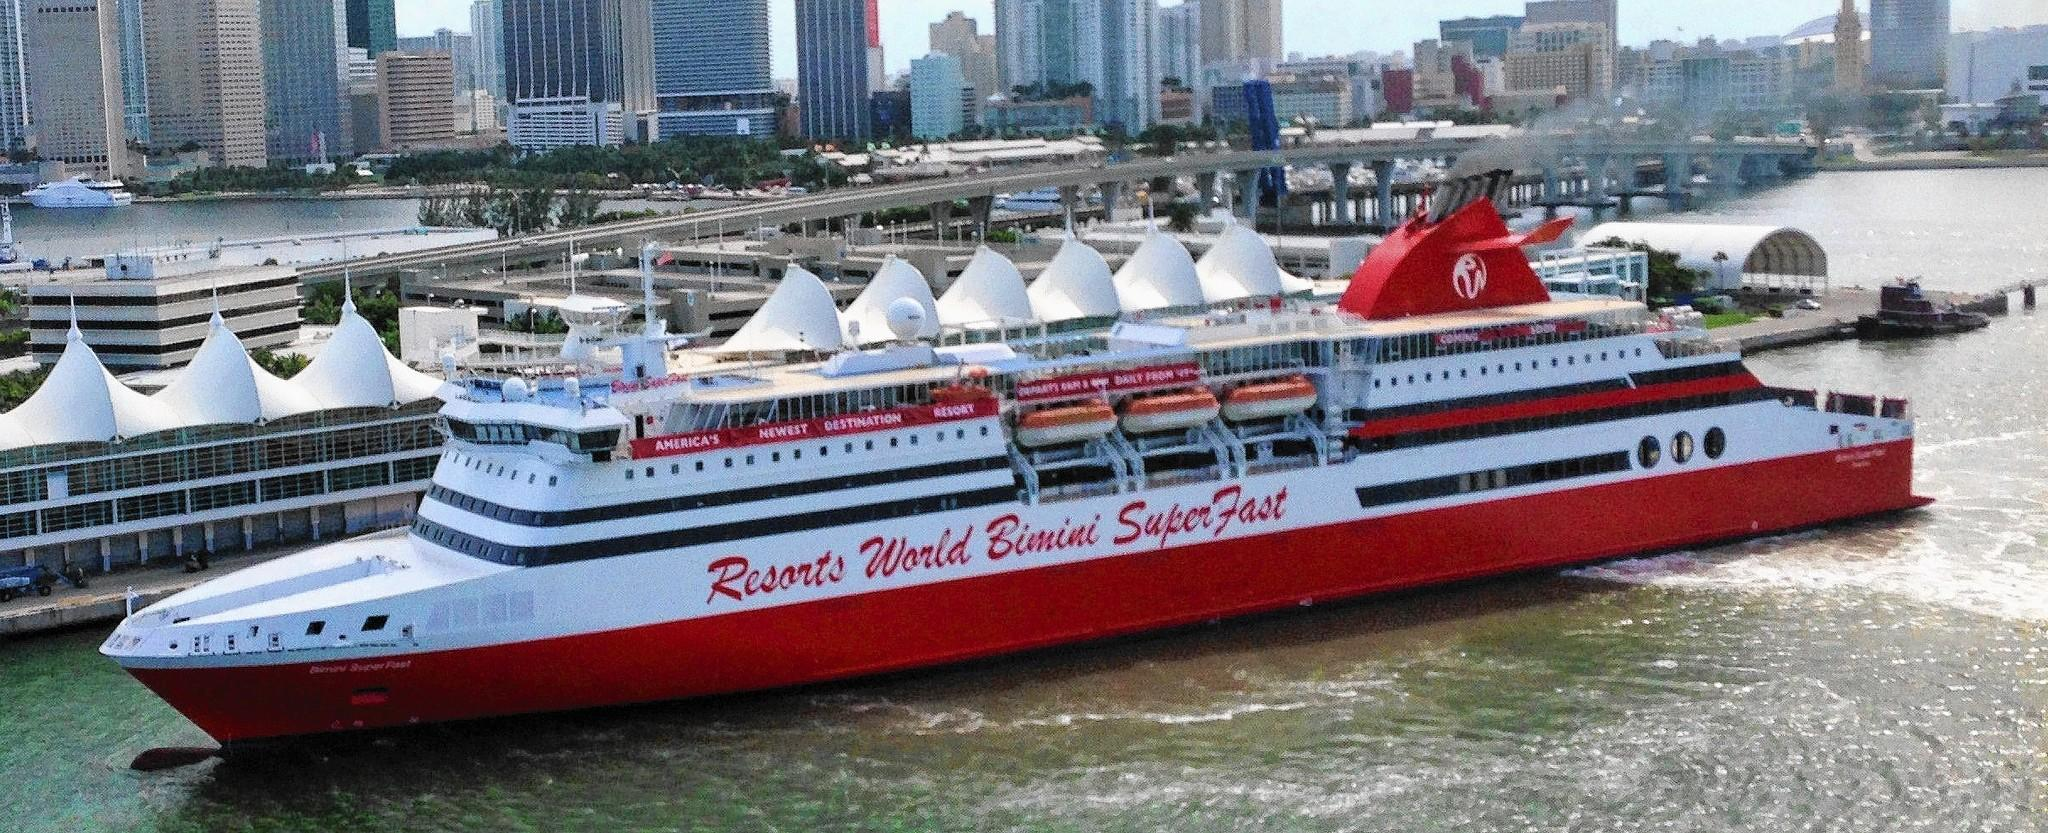 casino cruise miami bimini